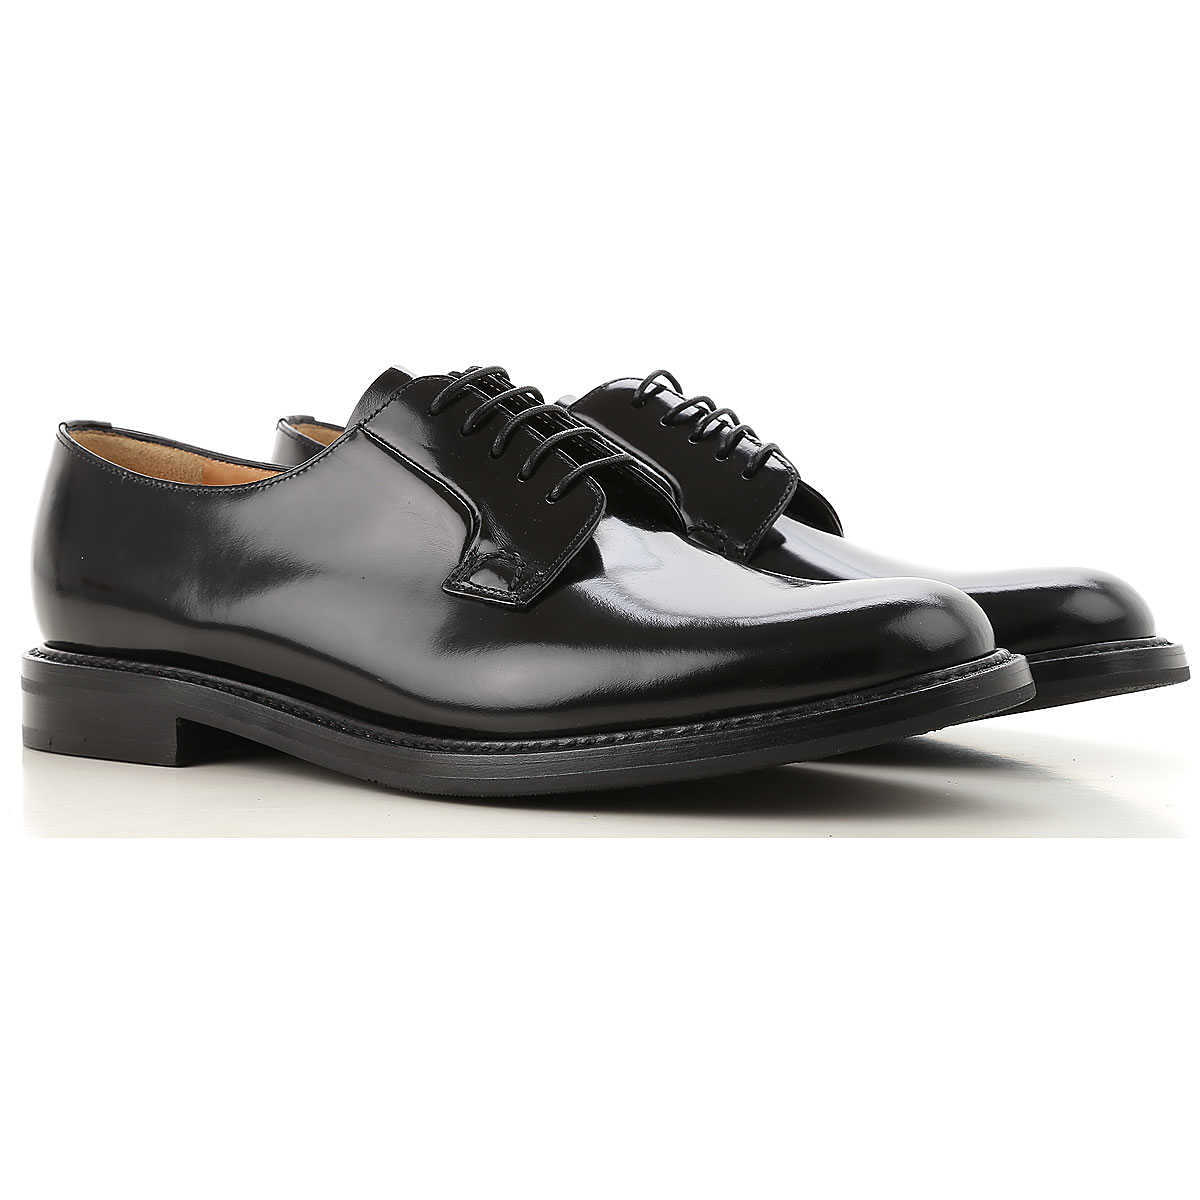 Church's Oxford Lace up Shoes for Women On Sale Black DK - GOOFASH - Womens LEATHER SHOES